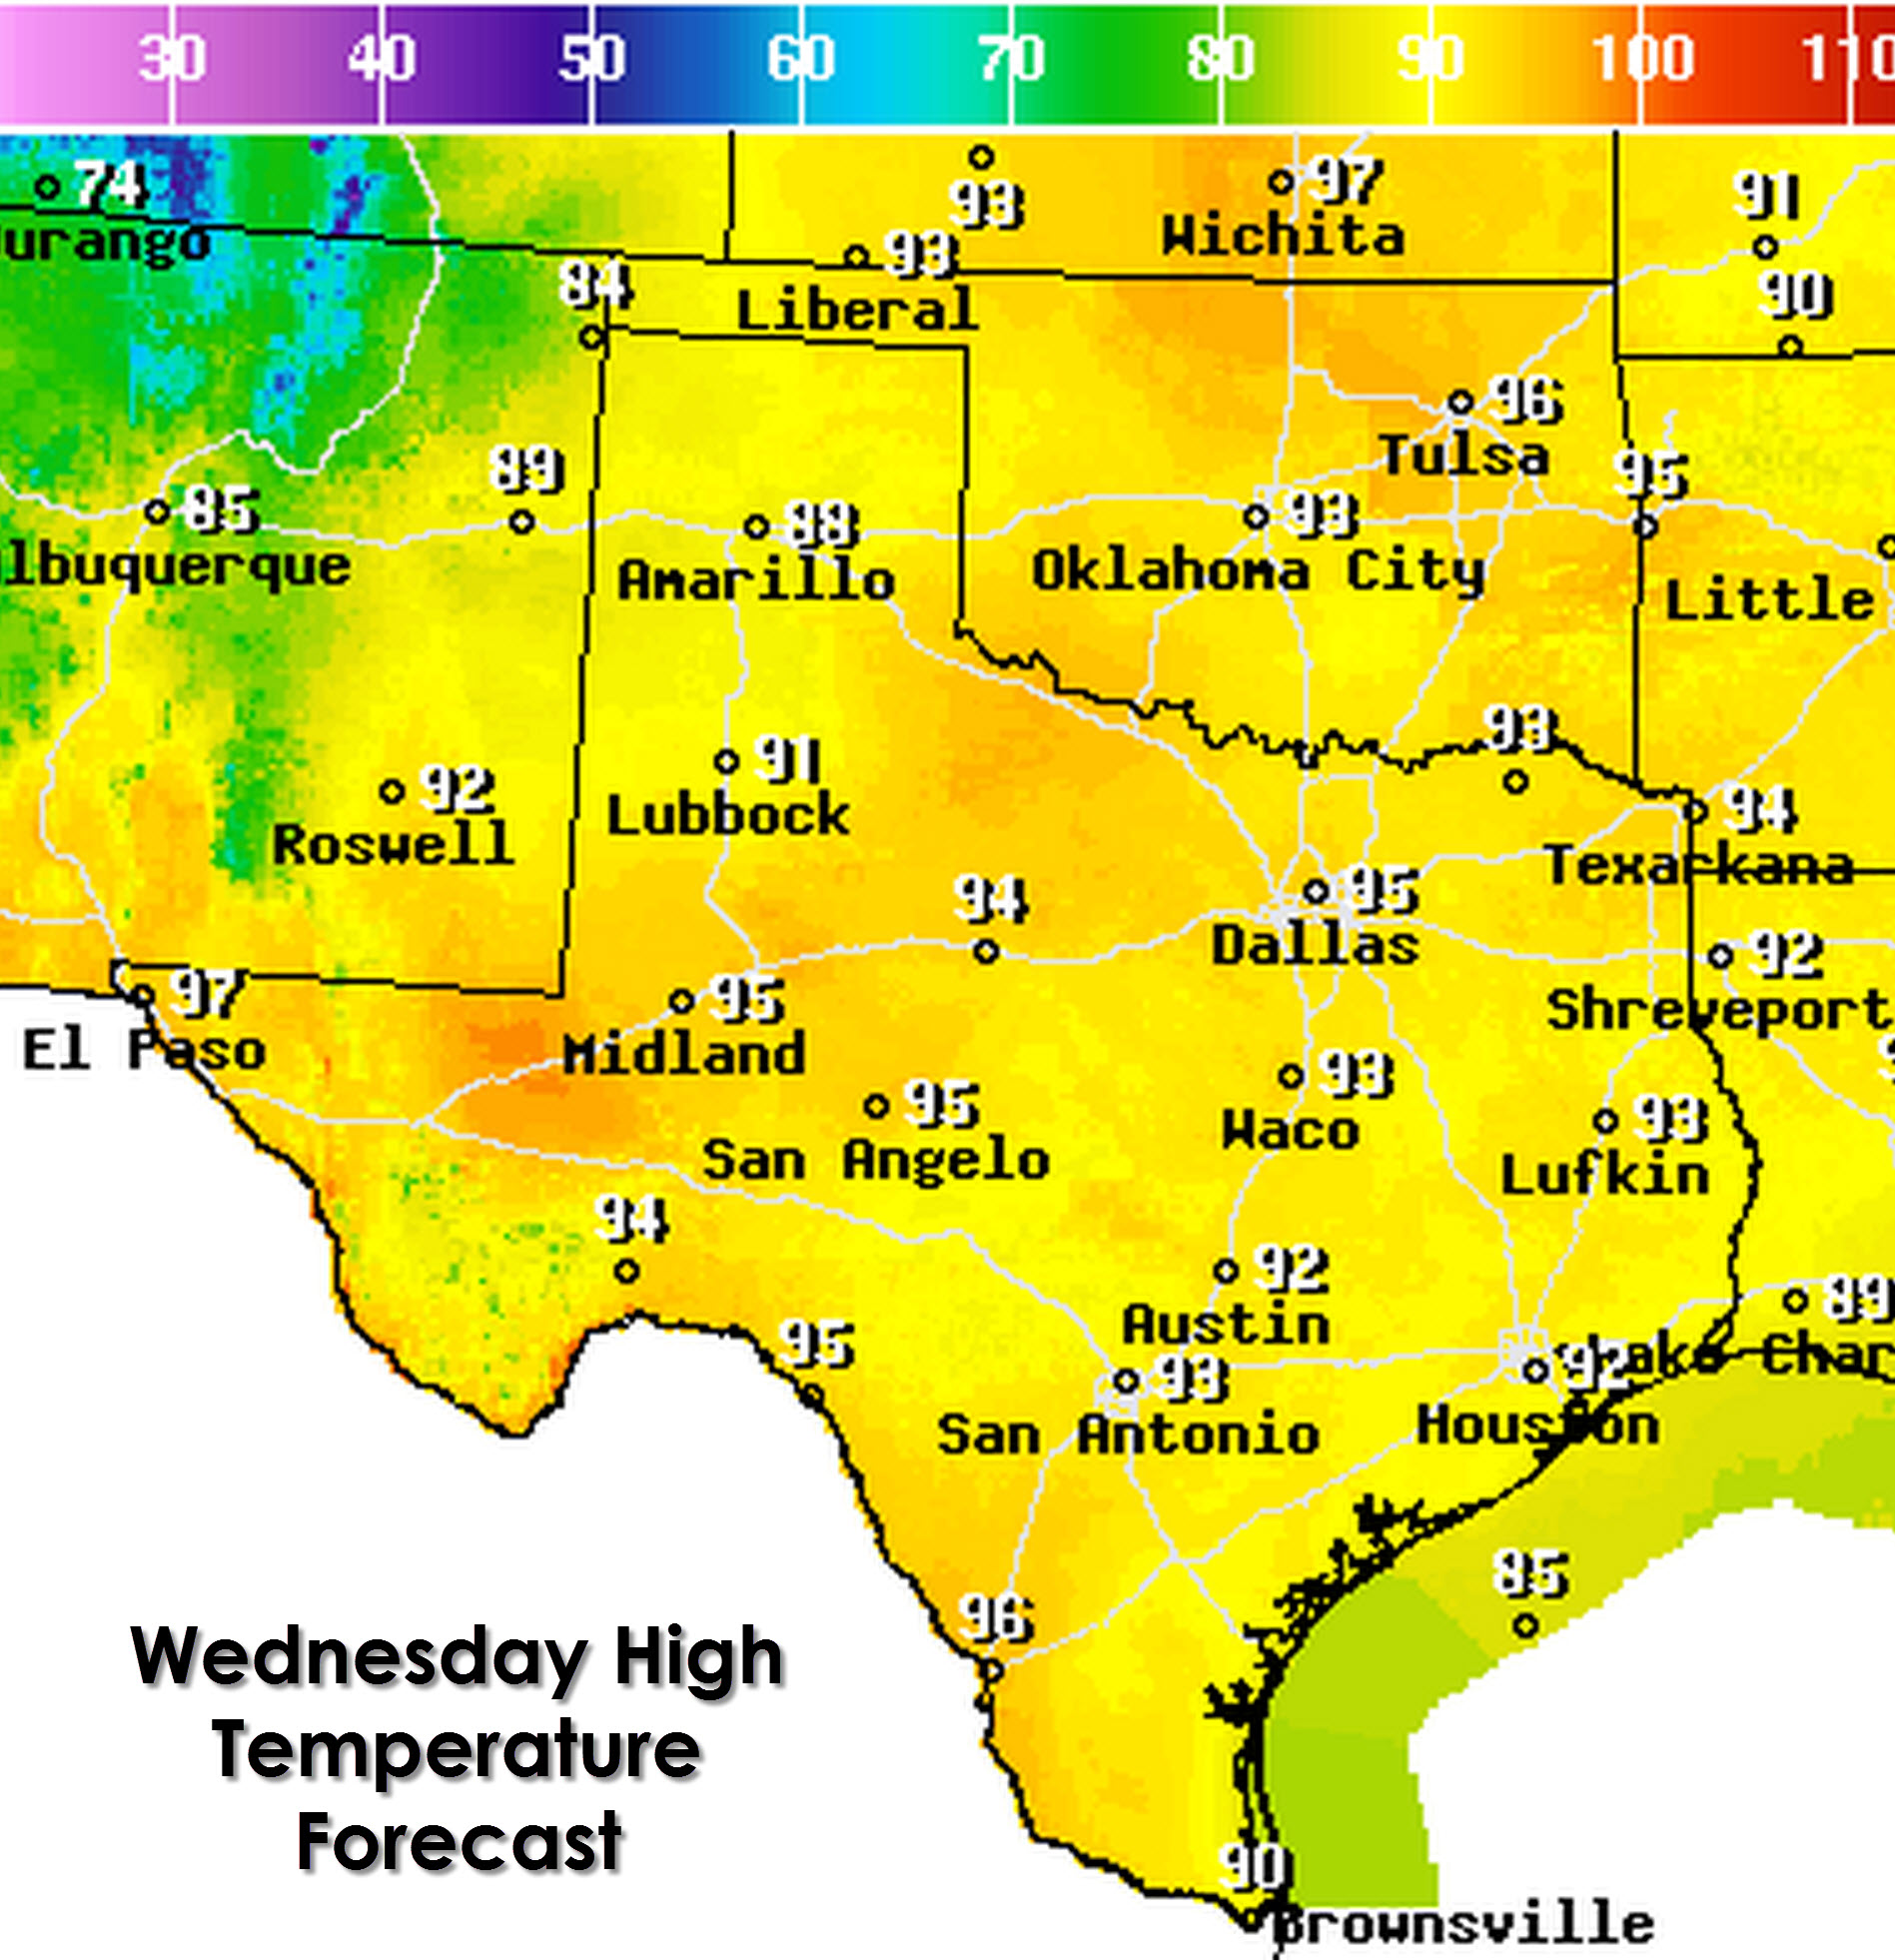 Wednesday, June 10, high temperature forecast